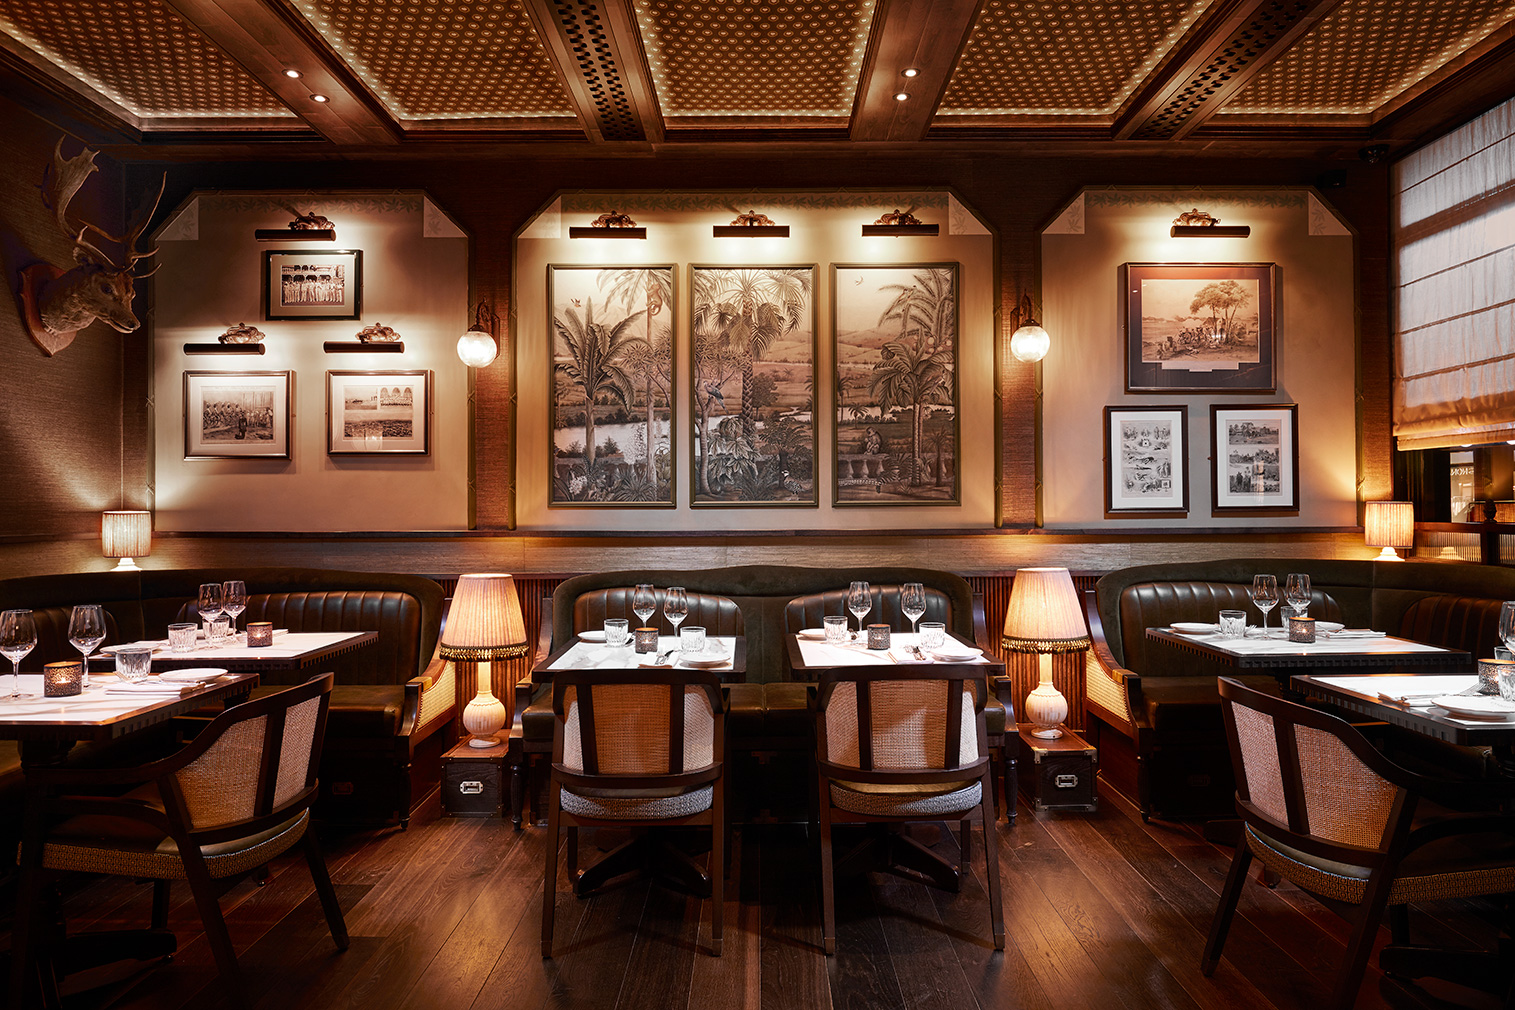 London restaurant Gymkhana harks back to the days of India's high society clubs